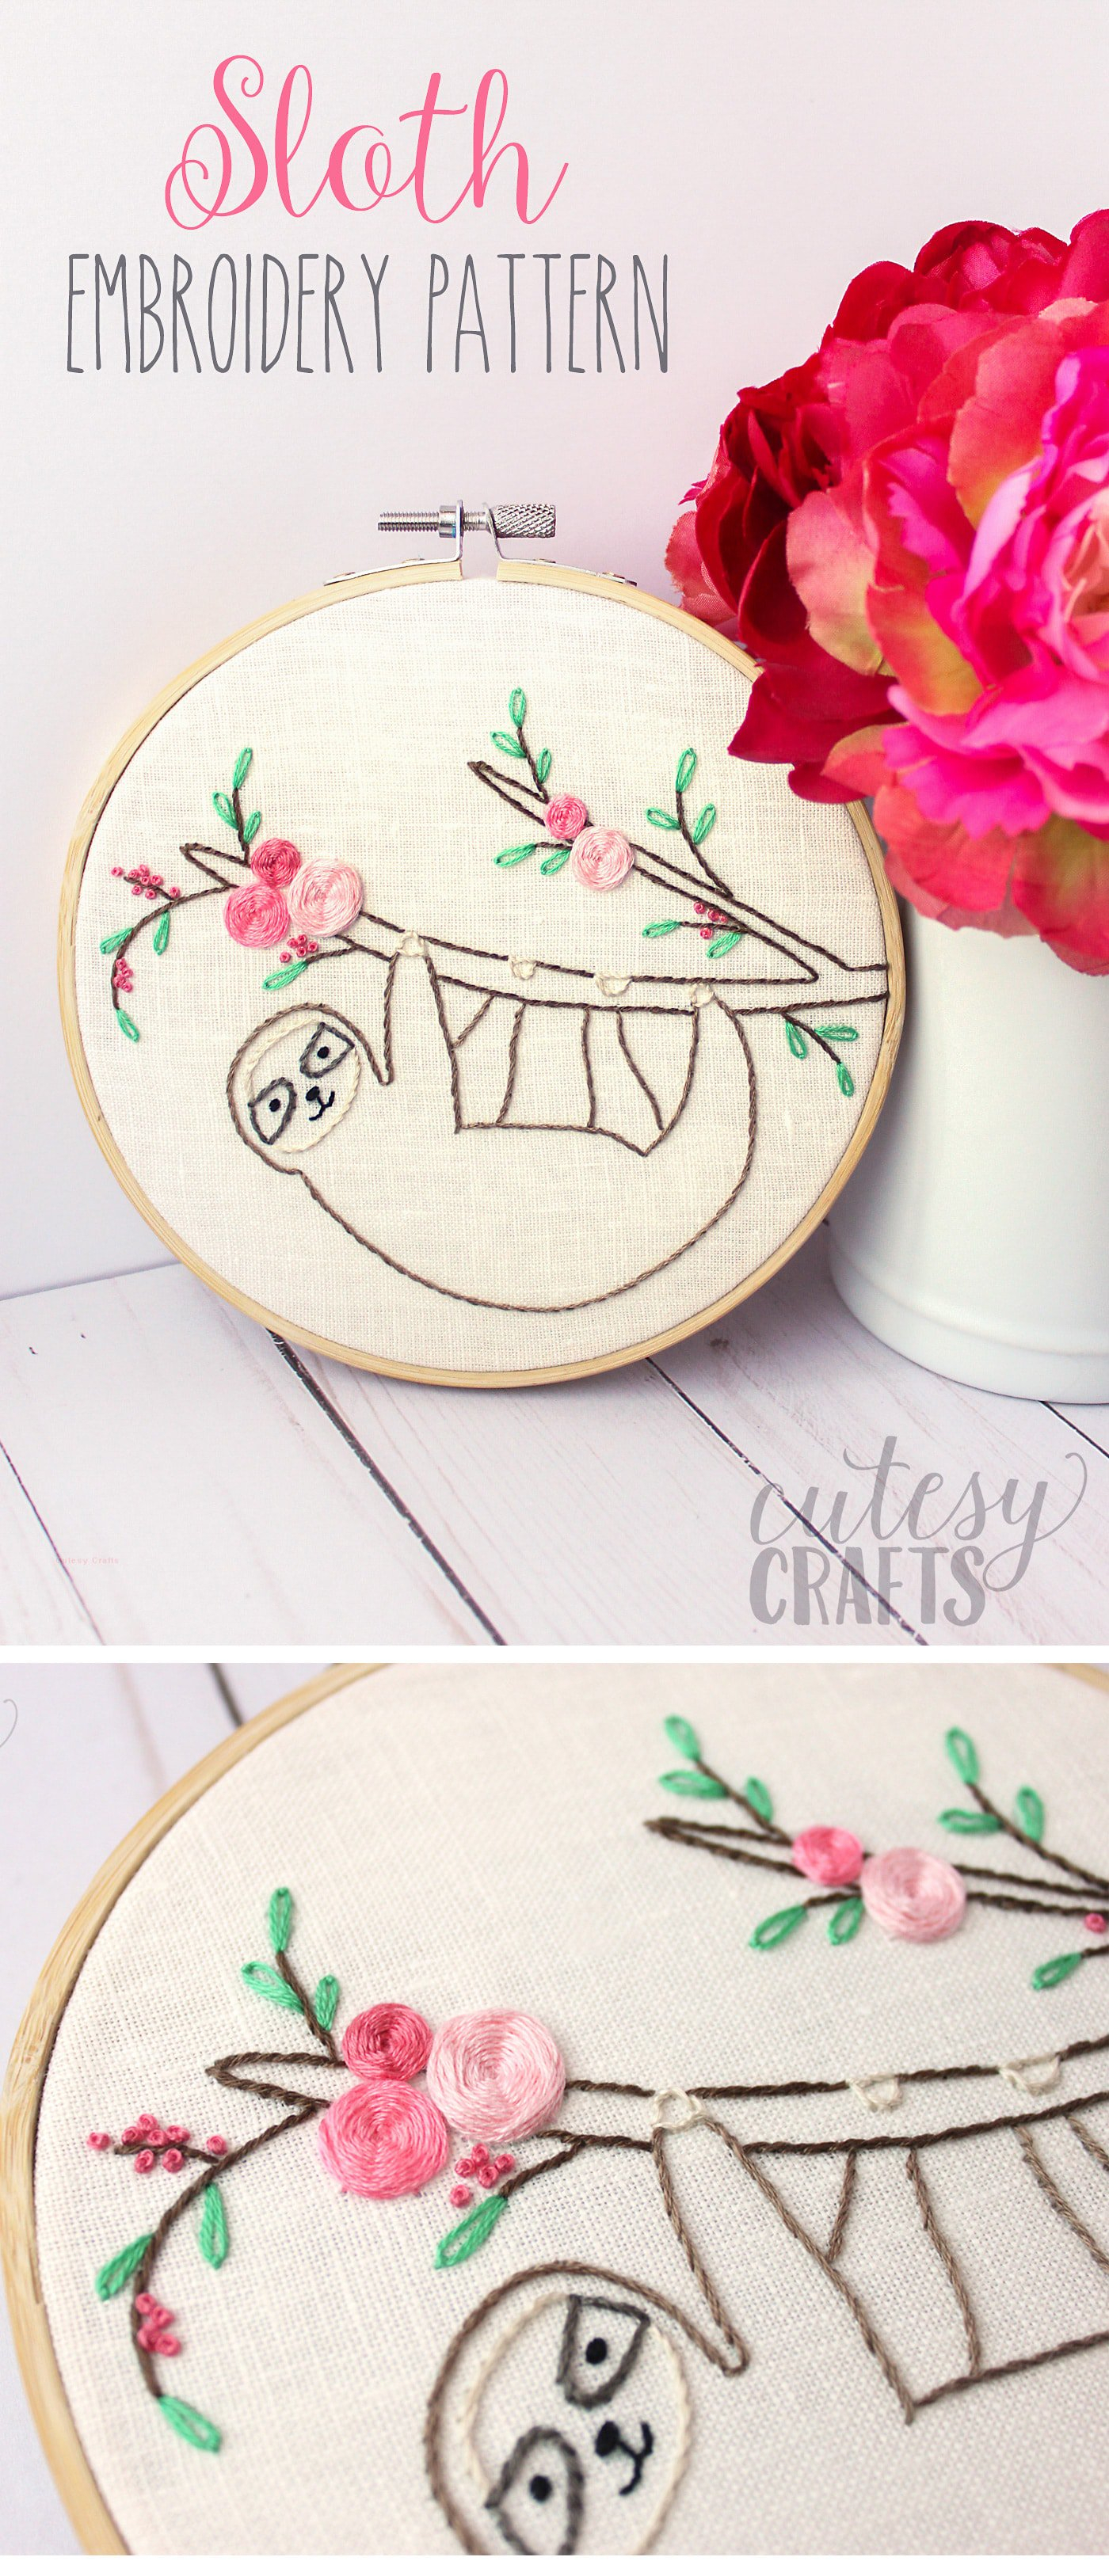 Embroidery Sampler Patterns Free Adorable Sloth Hand Embroidery Pattern The Polka Dot Chair